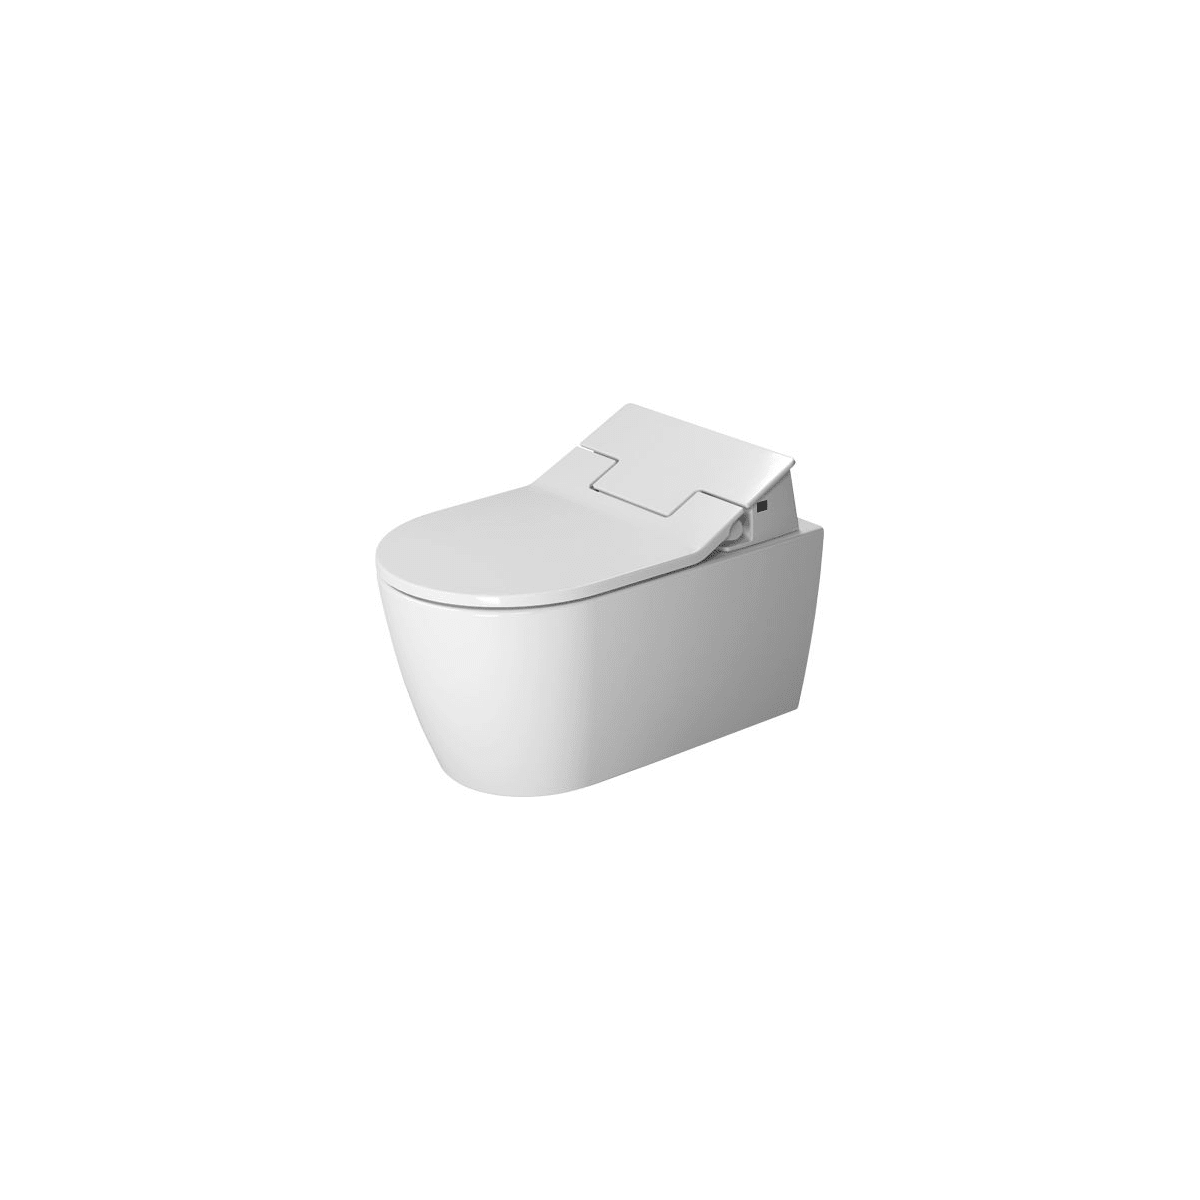 Duravit ME By Starck 0.8 / 1.6 GPF Wall Mounted One-Piece Elongated Toilet - Less Seat and Concealed Tank